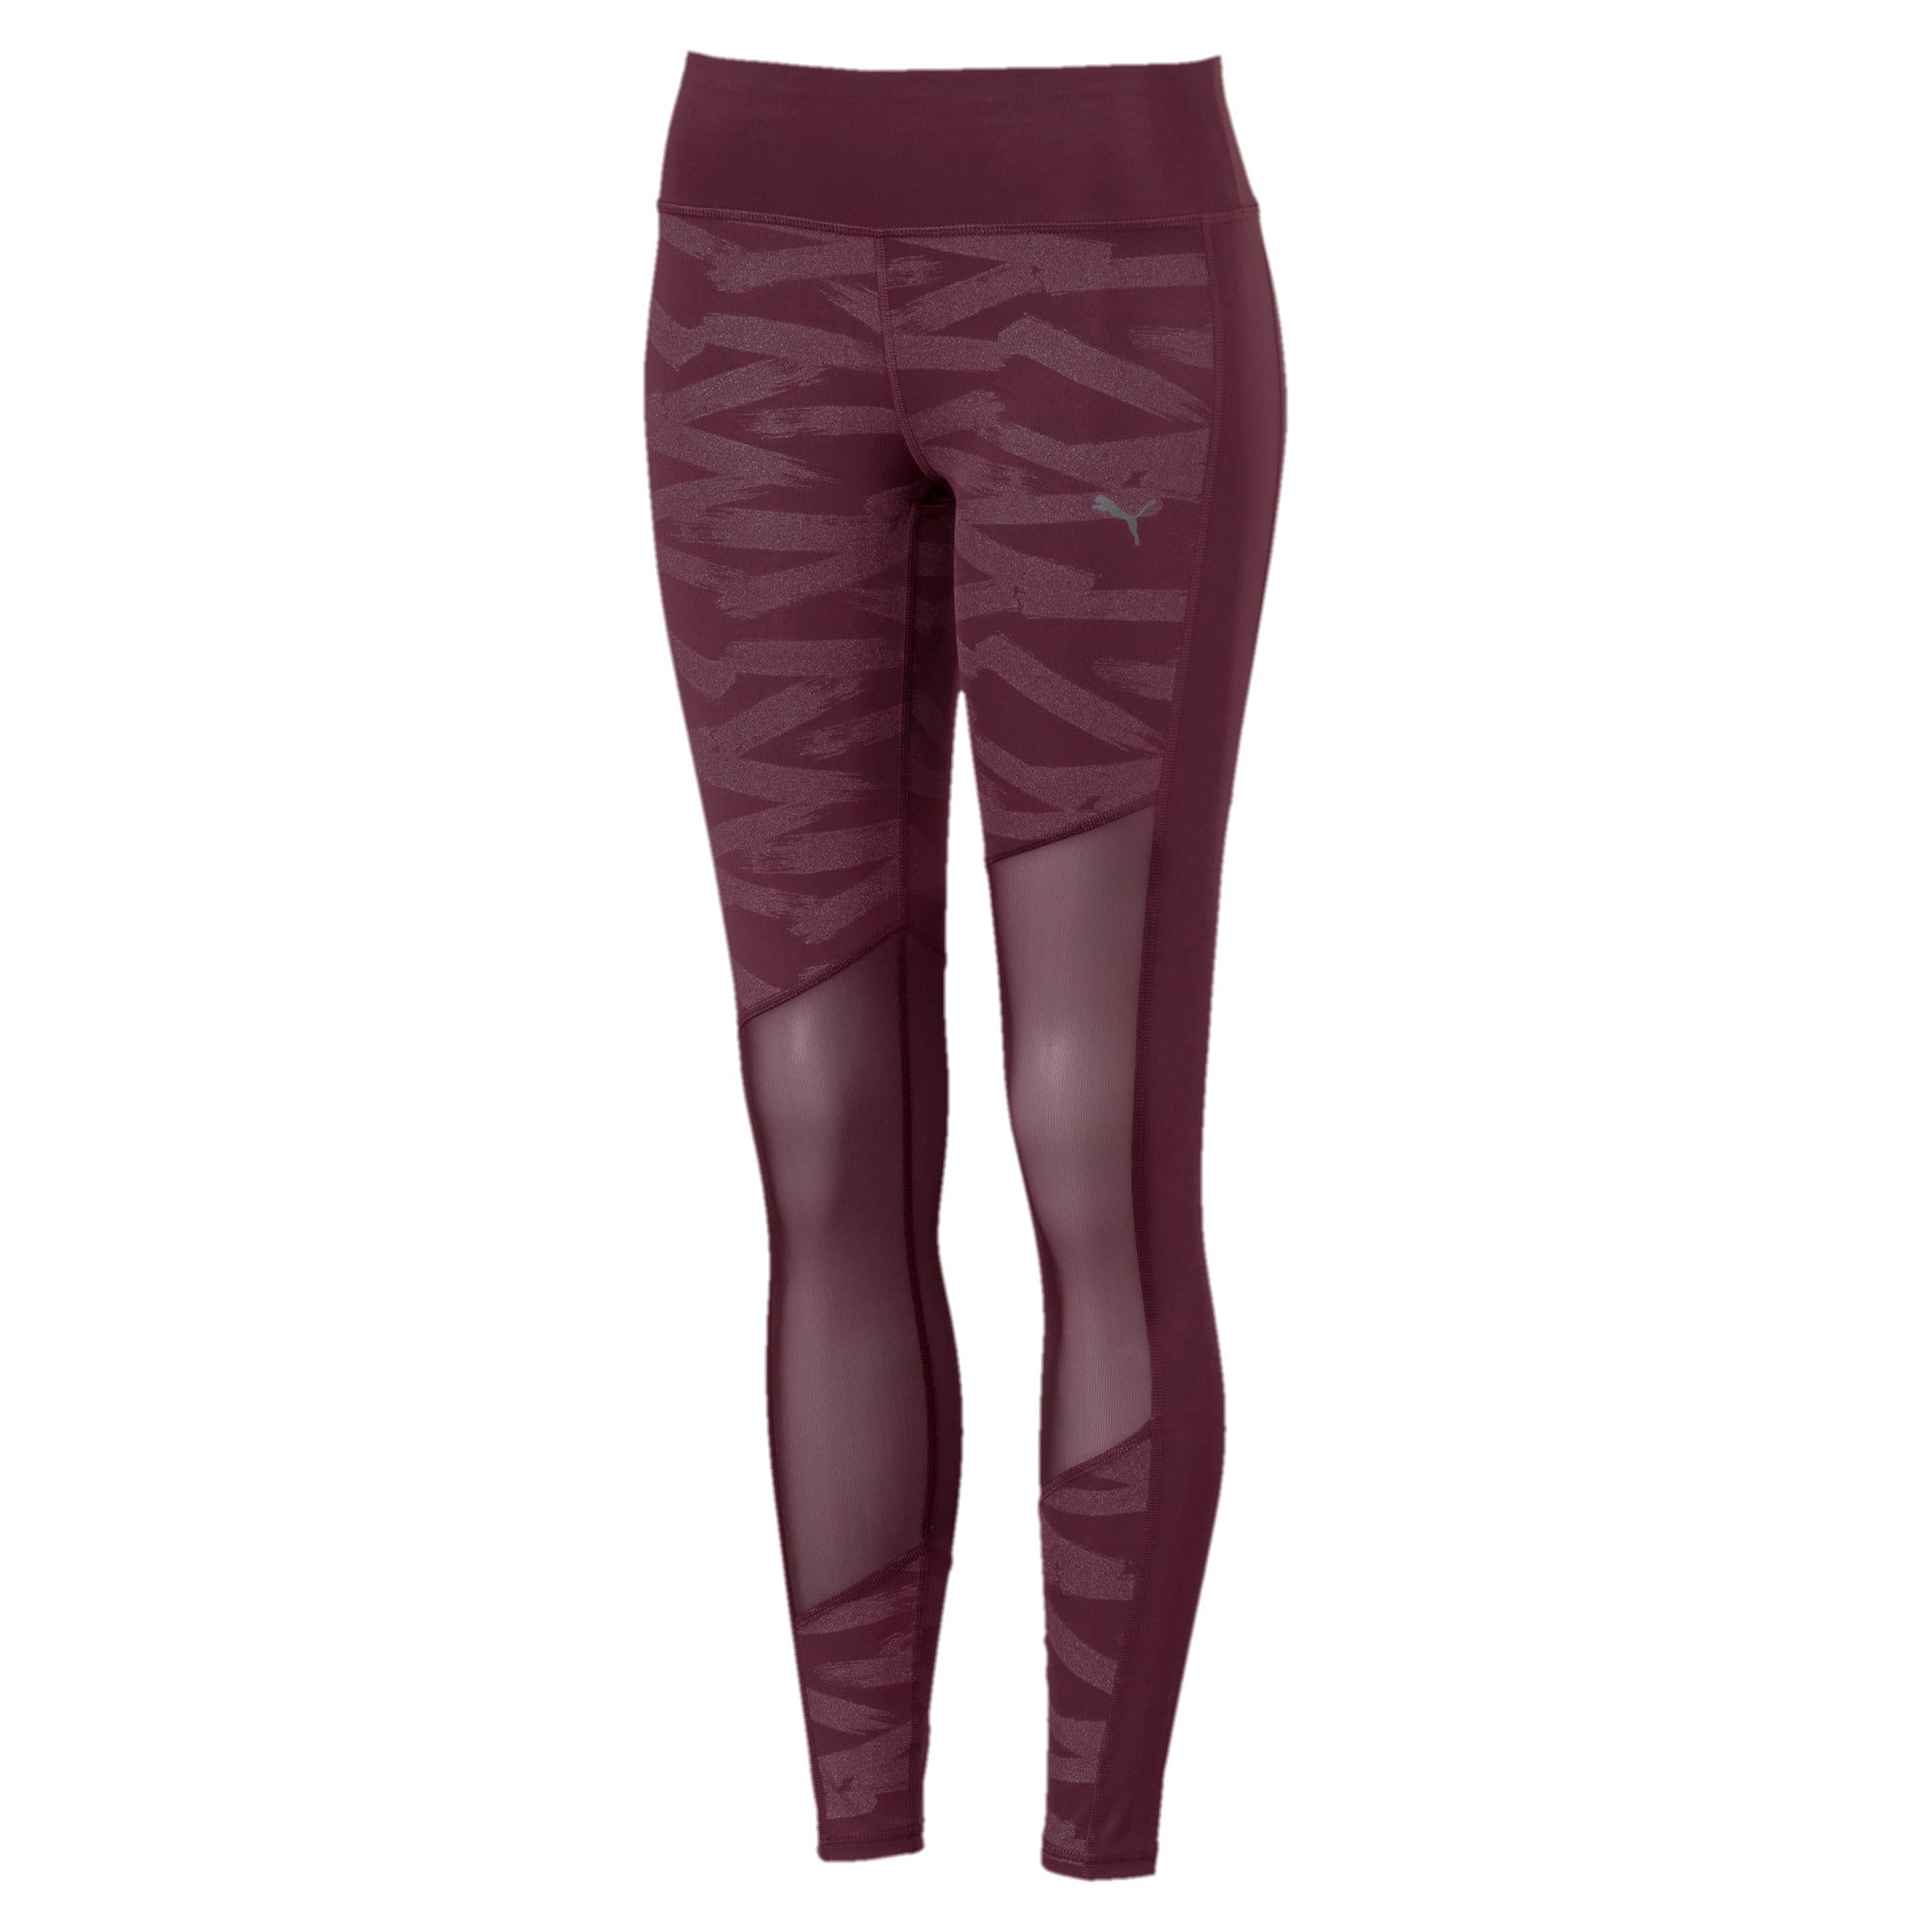 Thumbnail 1 of Always On Graphic 7/8 Women's Tights, Fig-Magenta Haze, medium-IND